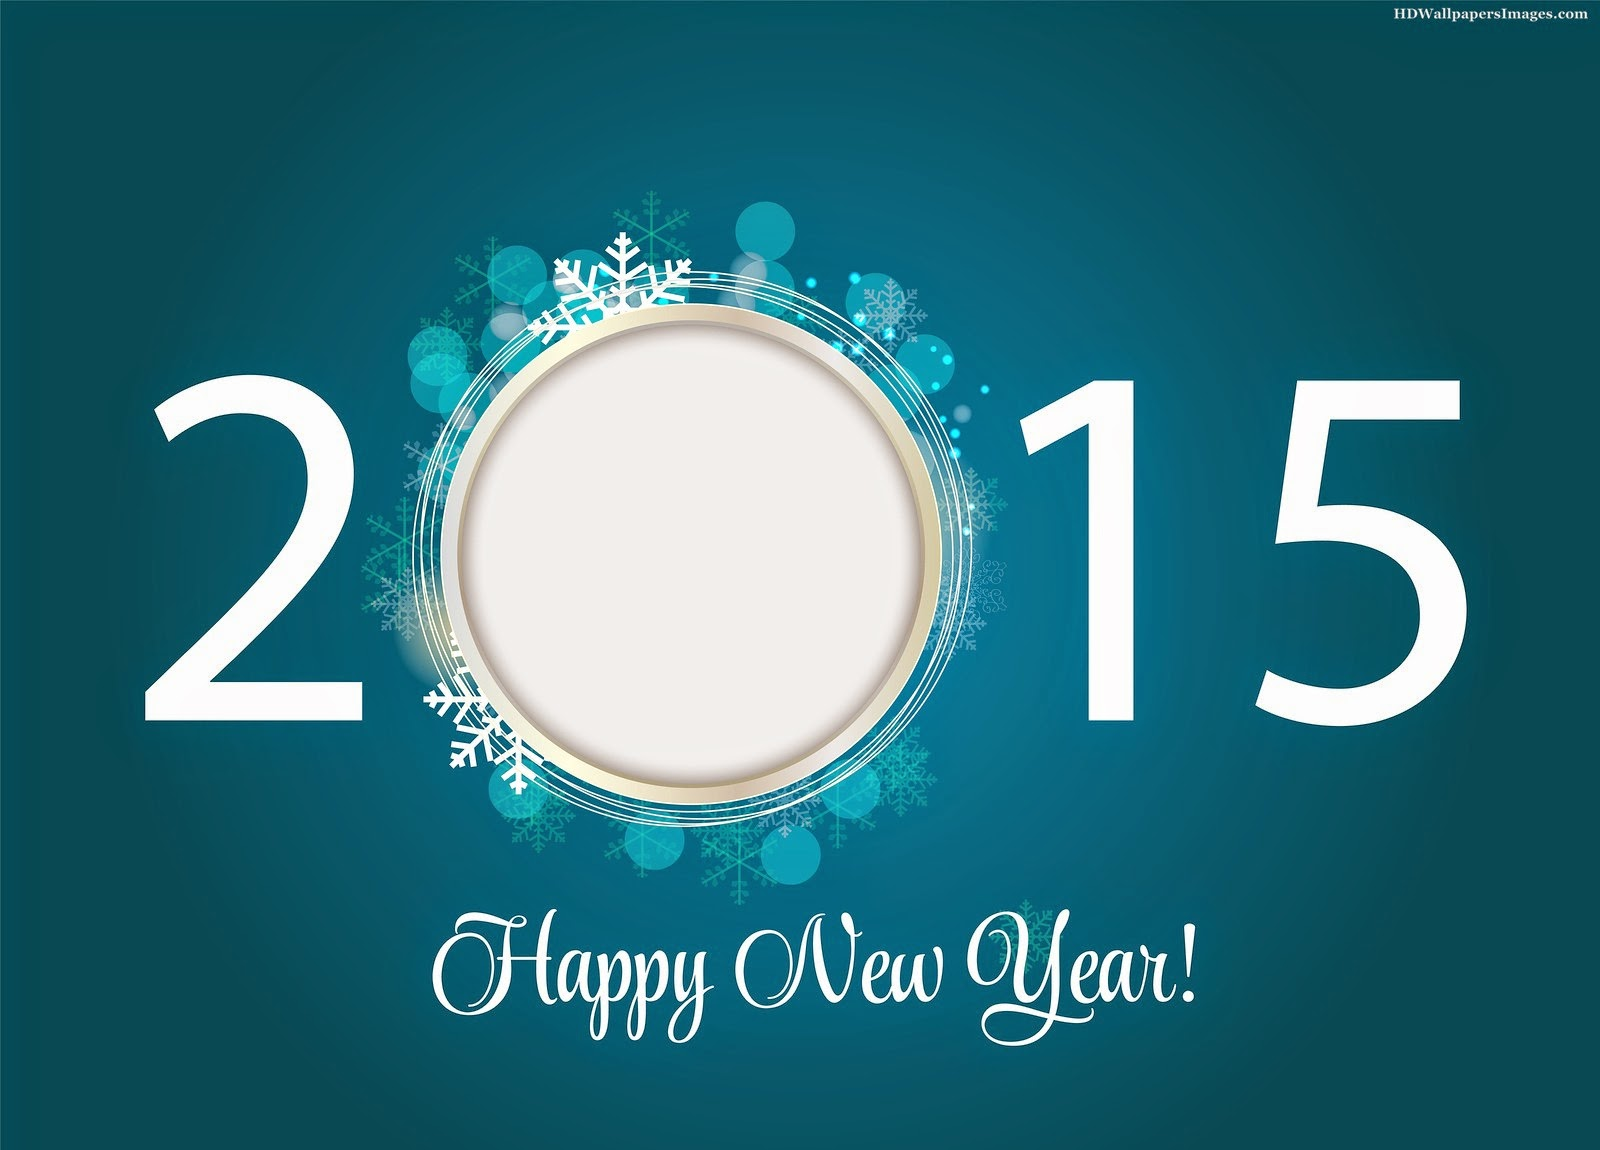 Happy New Year Message 2015